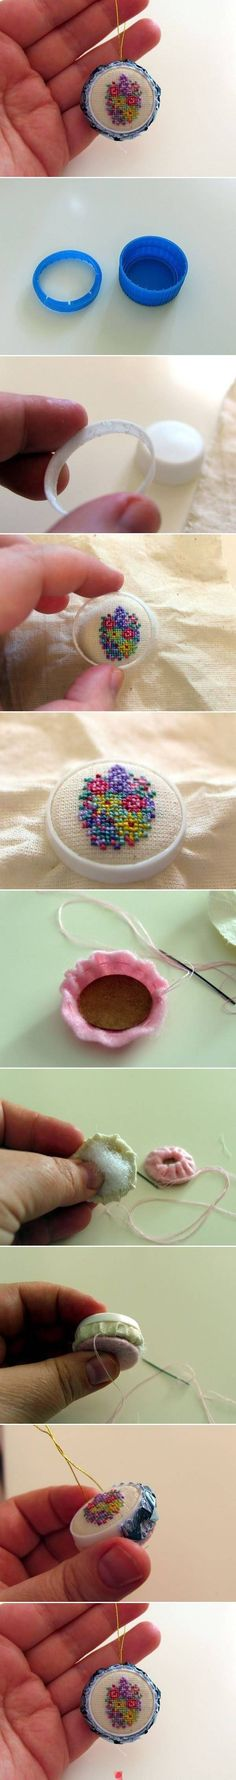 Mini Cross stitch with a pop cap. This is bloody brilliant.